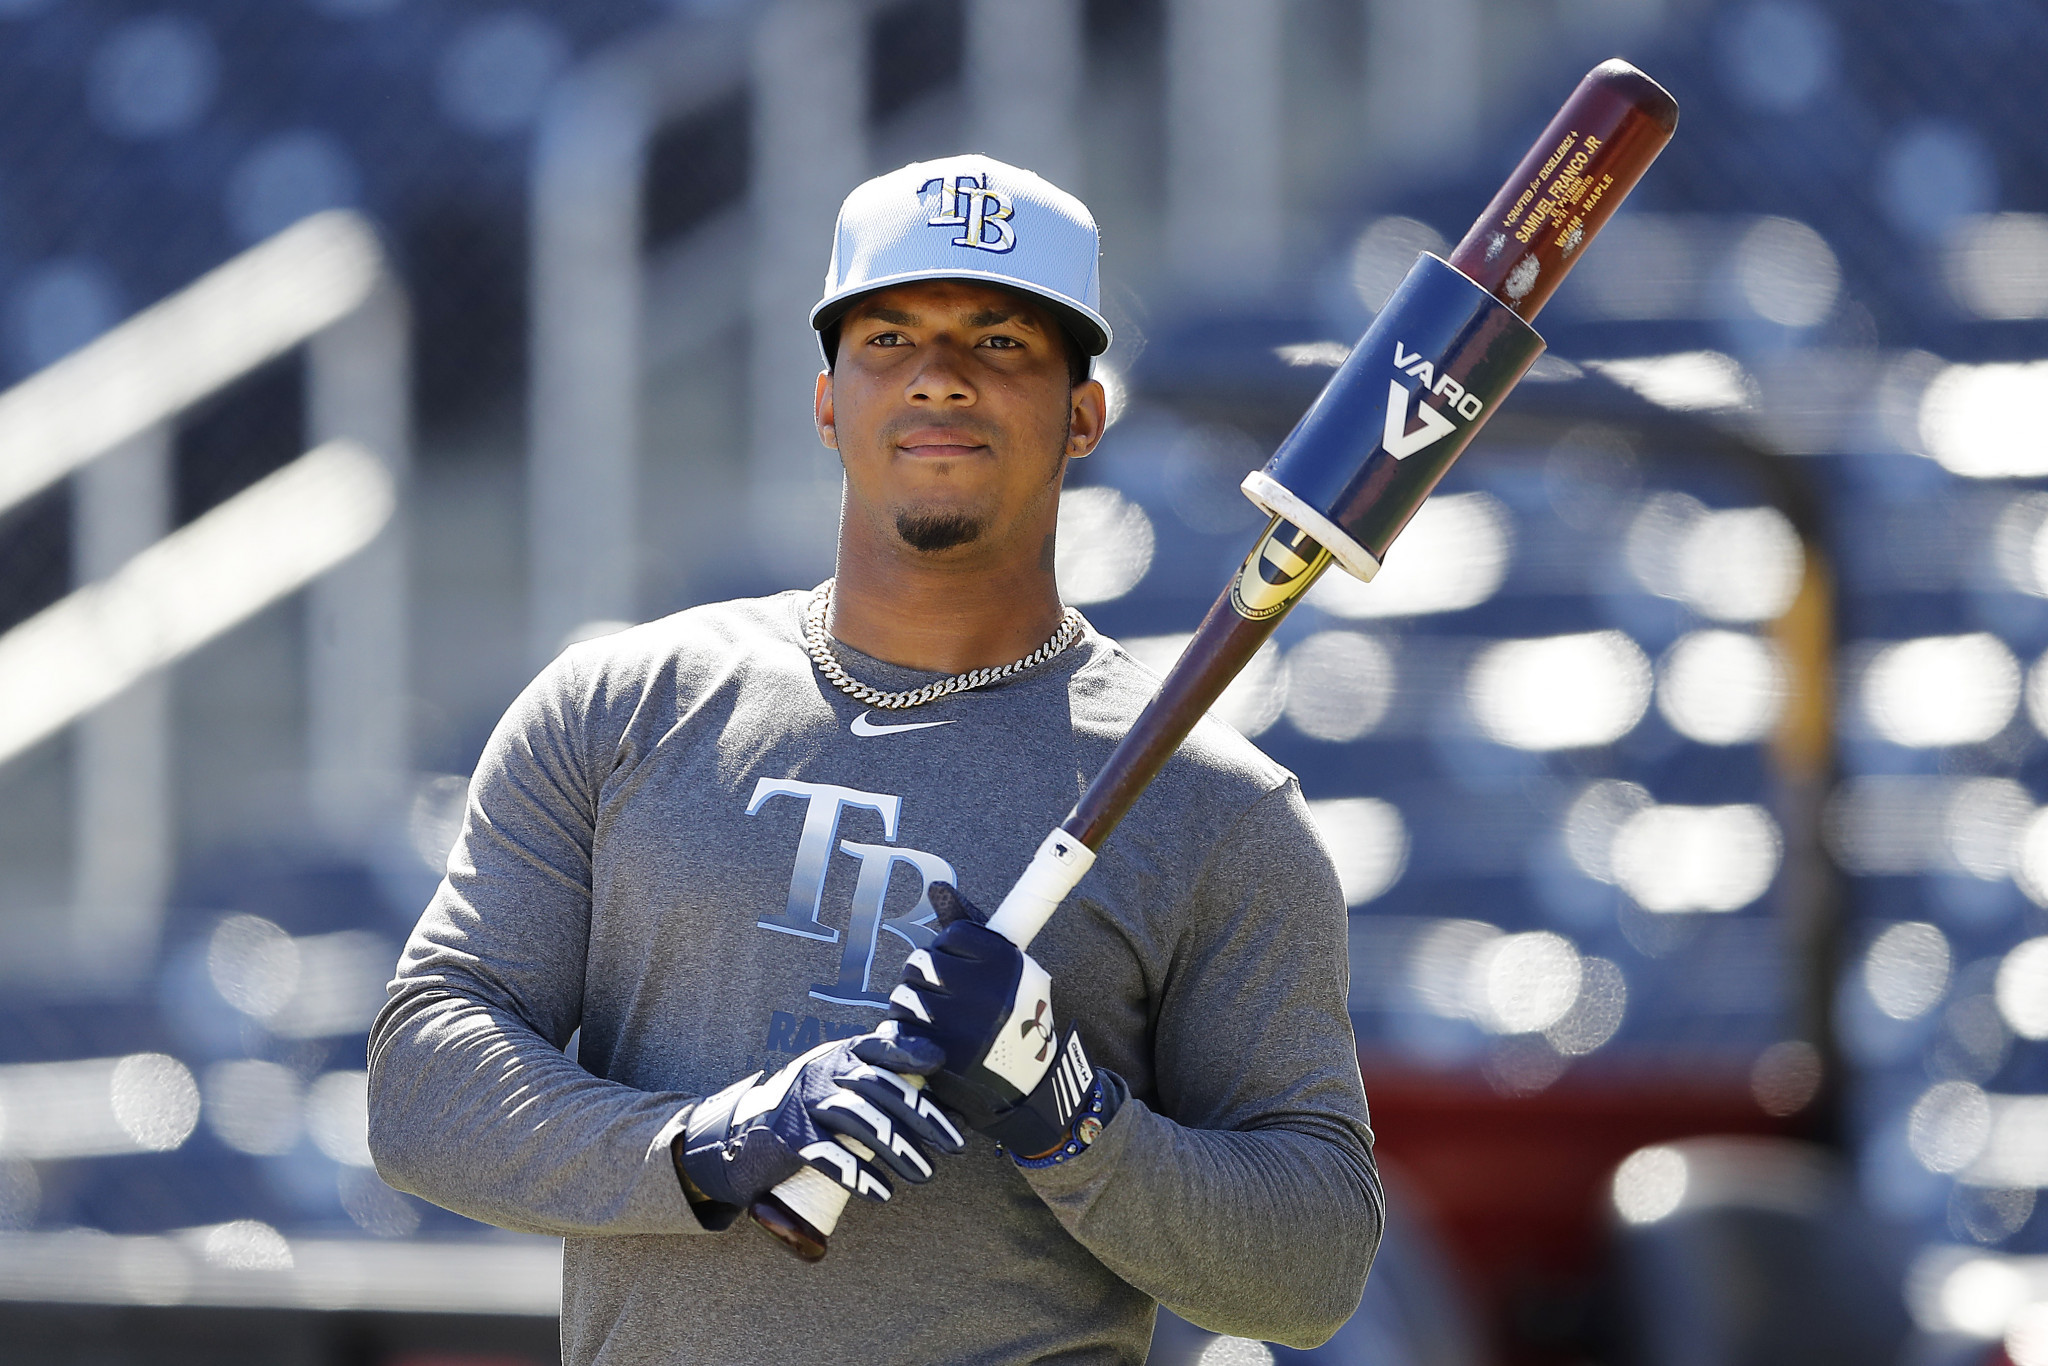 Top baseball prospect Franco to play for the Dominican Republic in Olympic qualifier